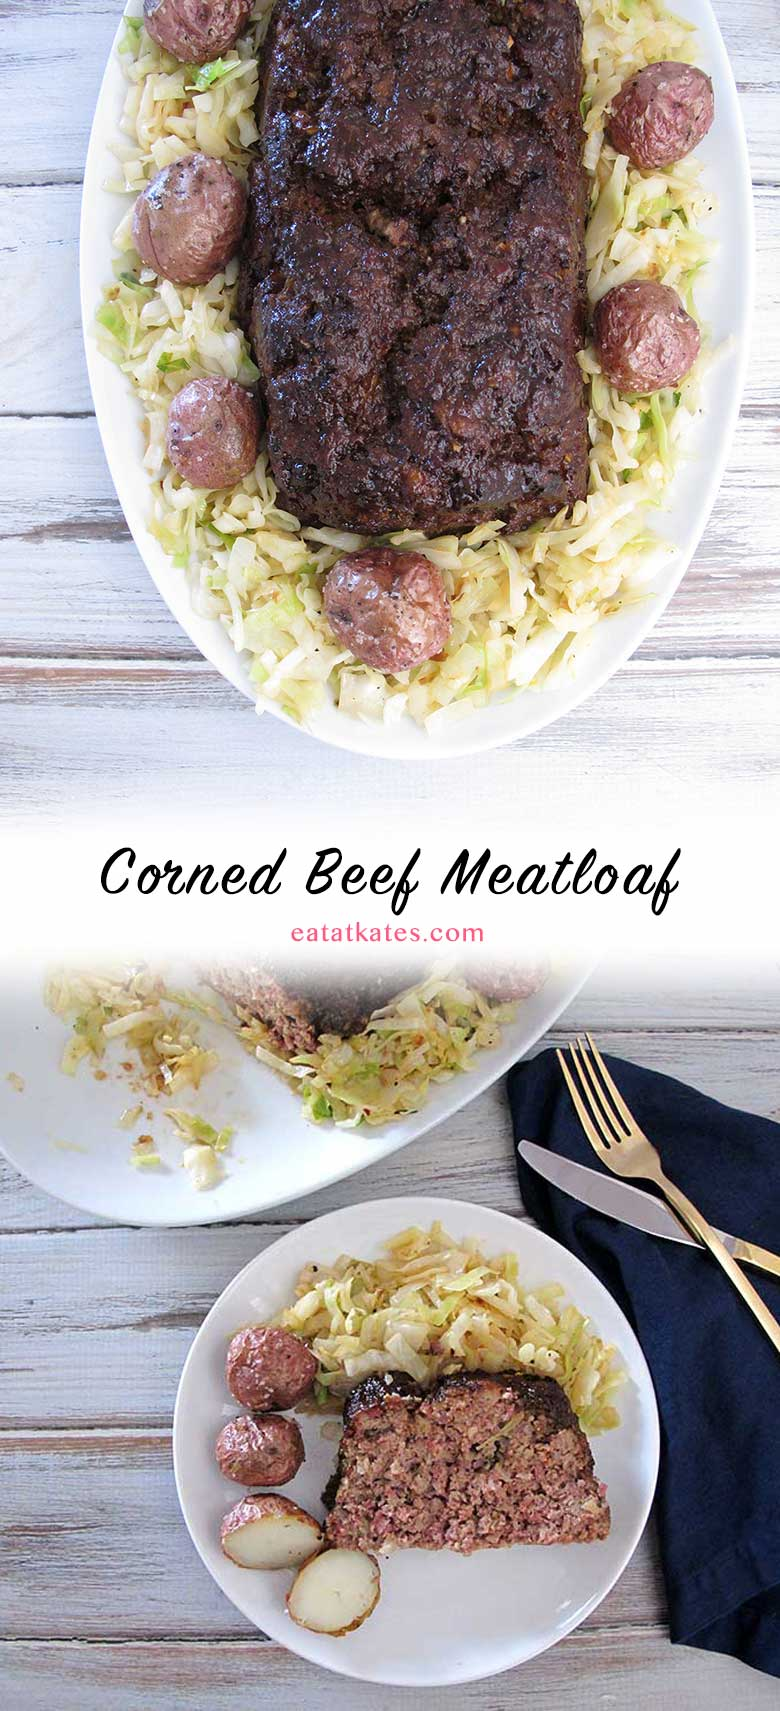 Corned Beef Meatloaf | eatatkates.com - Take that leftover corned beef and put it to use in something other than boring (although delicious) sandwich. Mix it up into meatloaf that'll keep St. Patrick's day going.